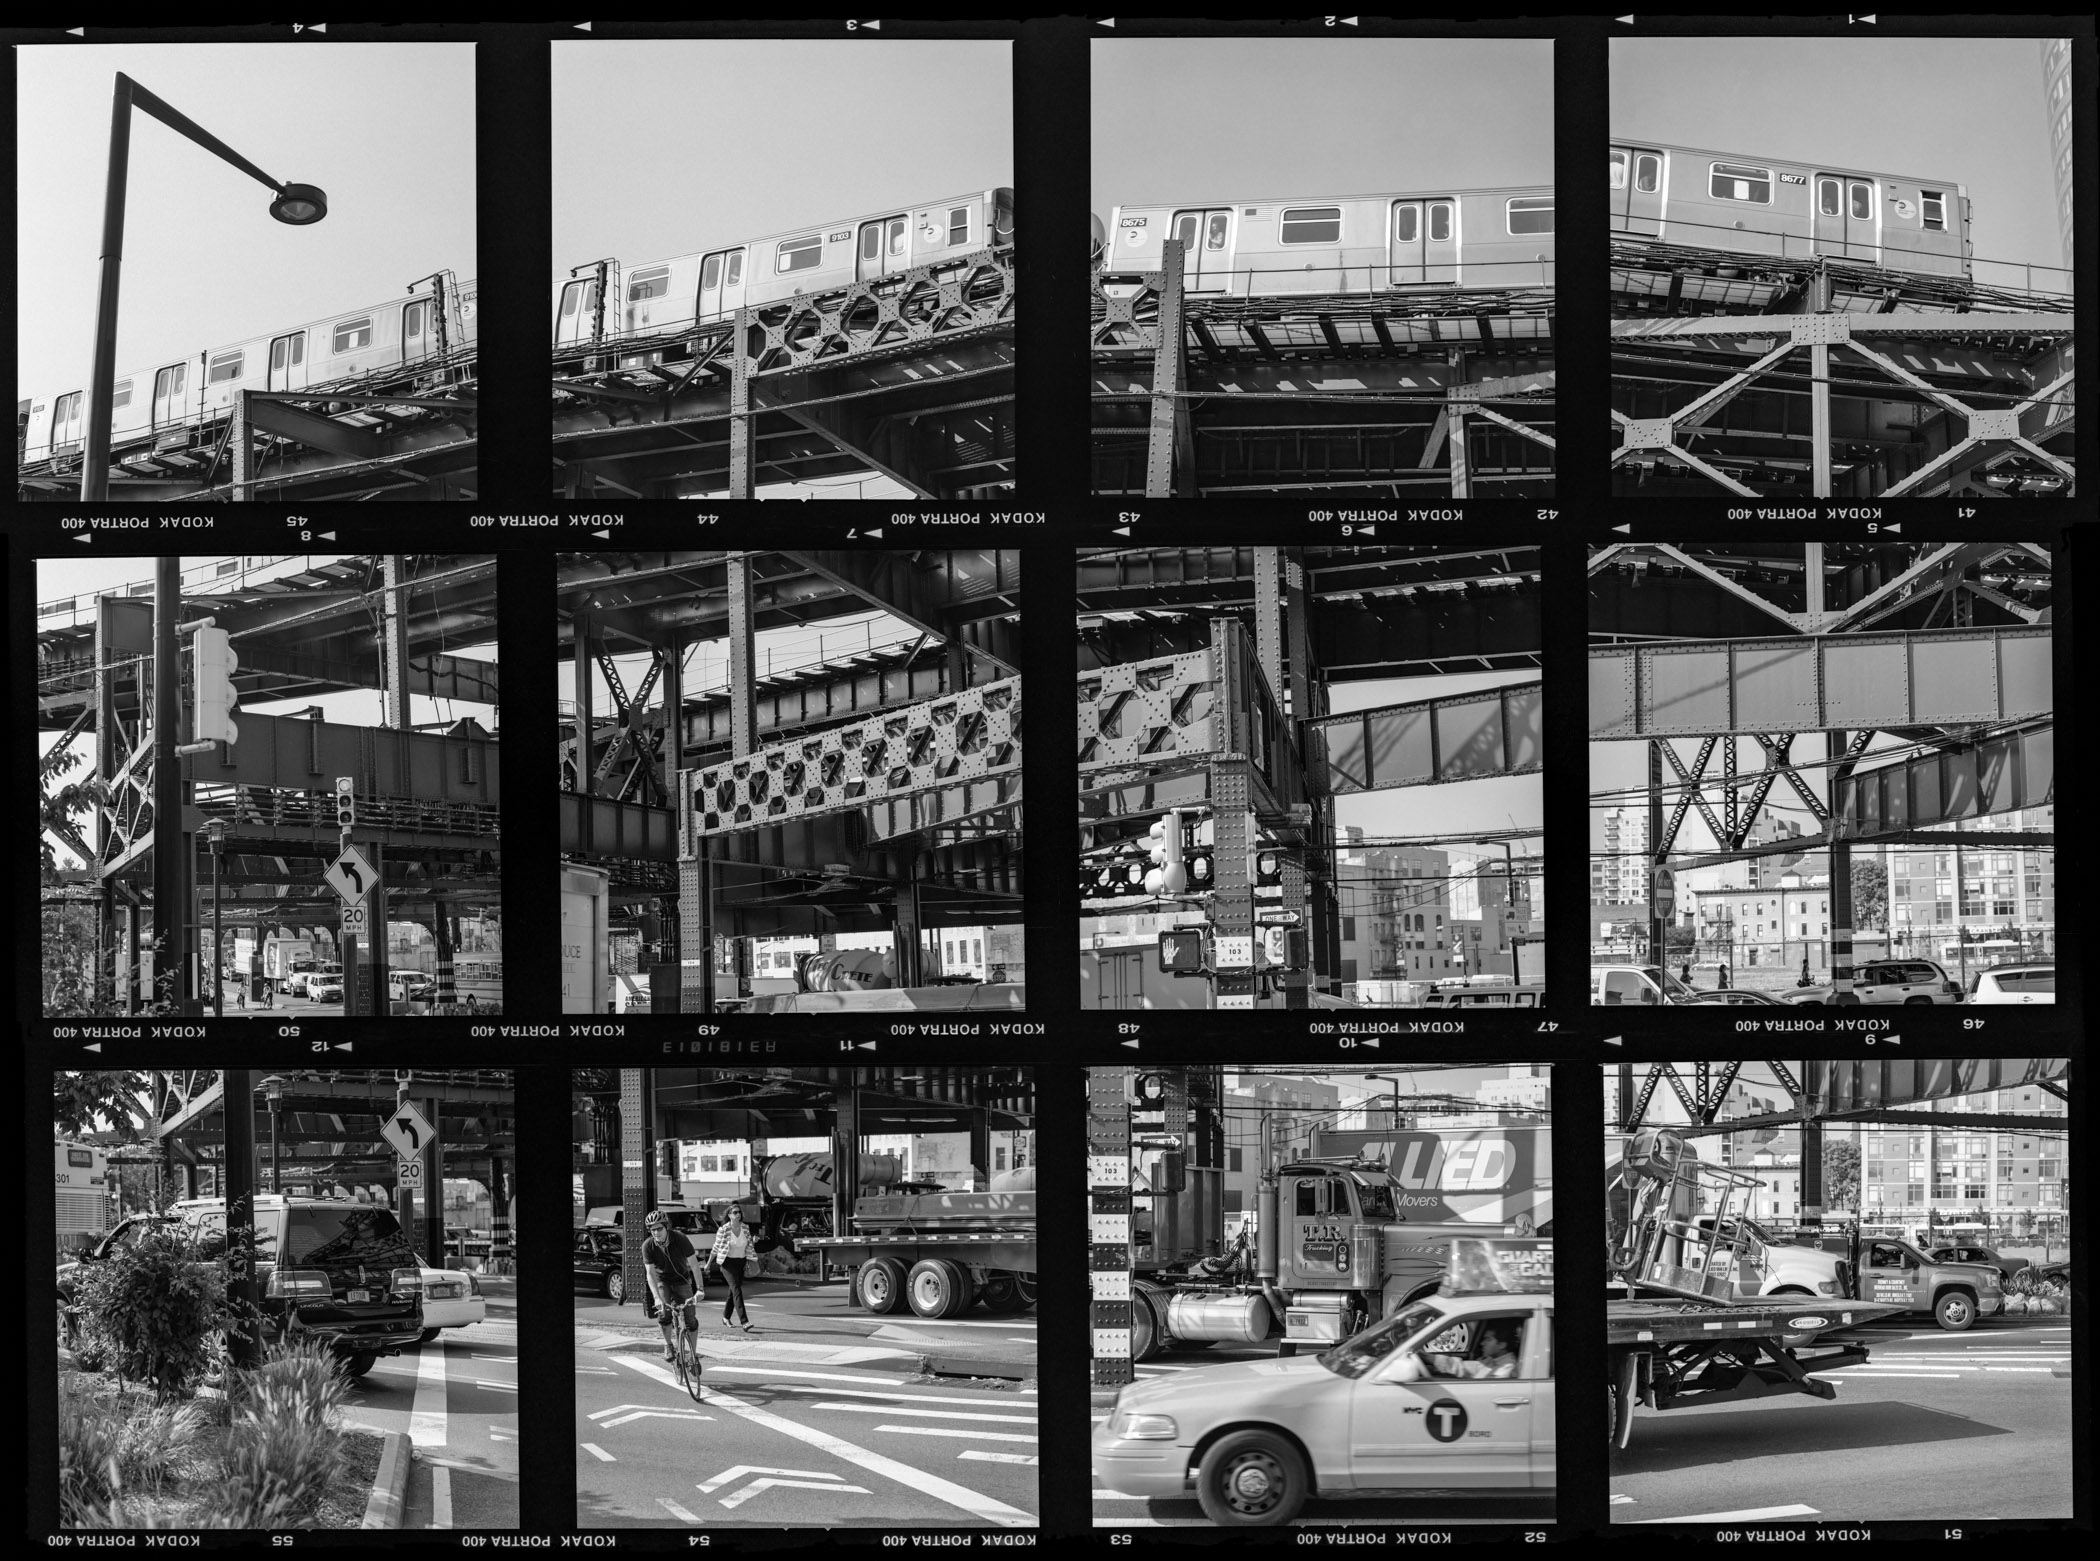 William-Furniss-Queens-Plaza-2016-Archival-Pigment-Print-14.5x20inch-Ed25